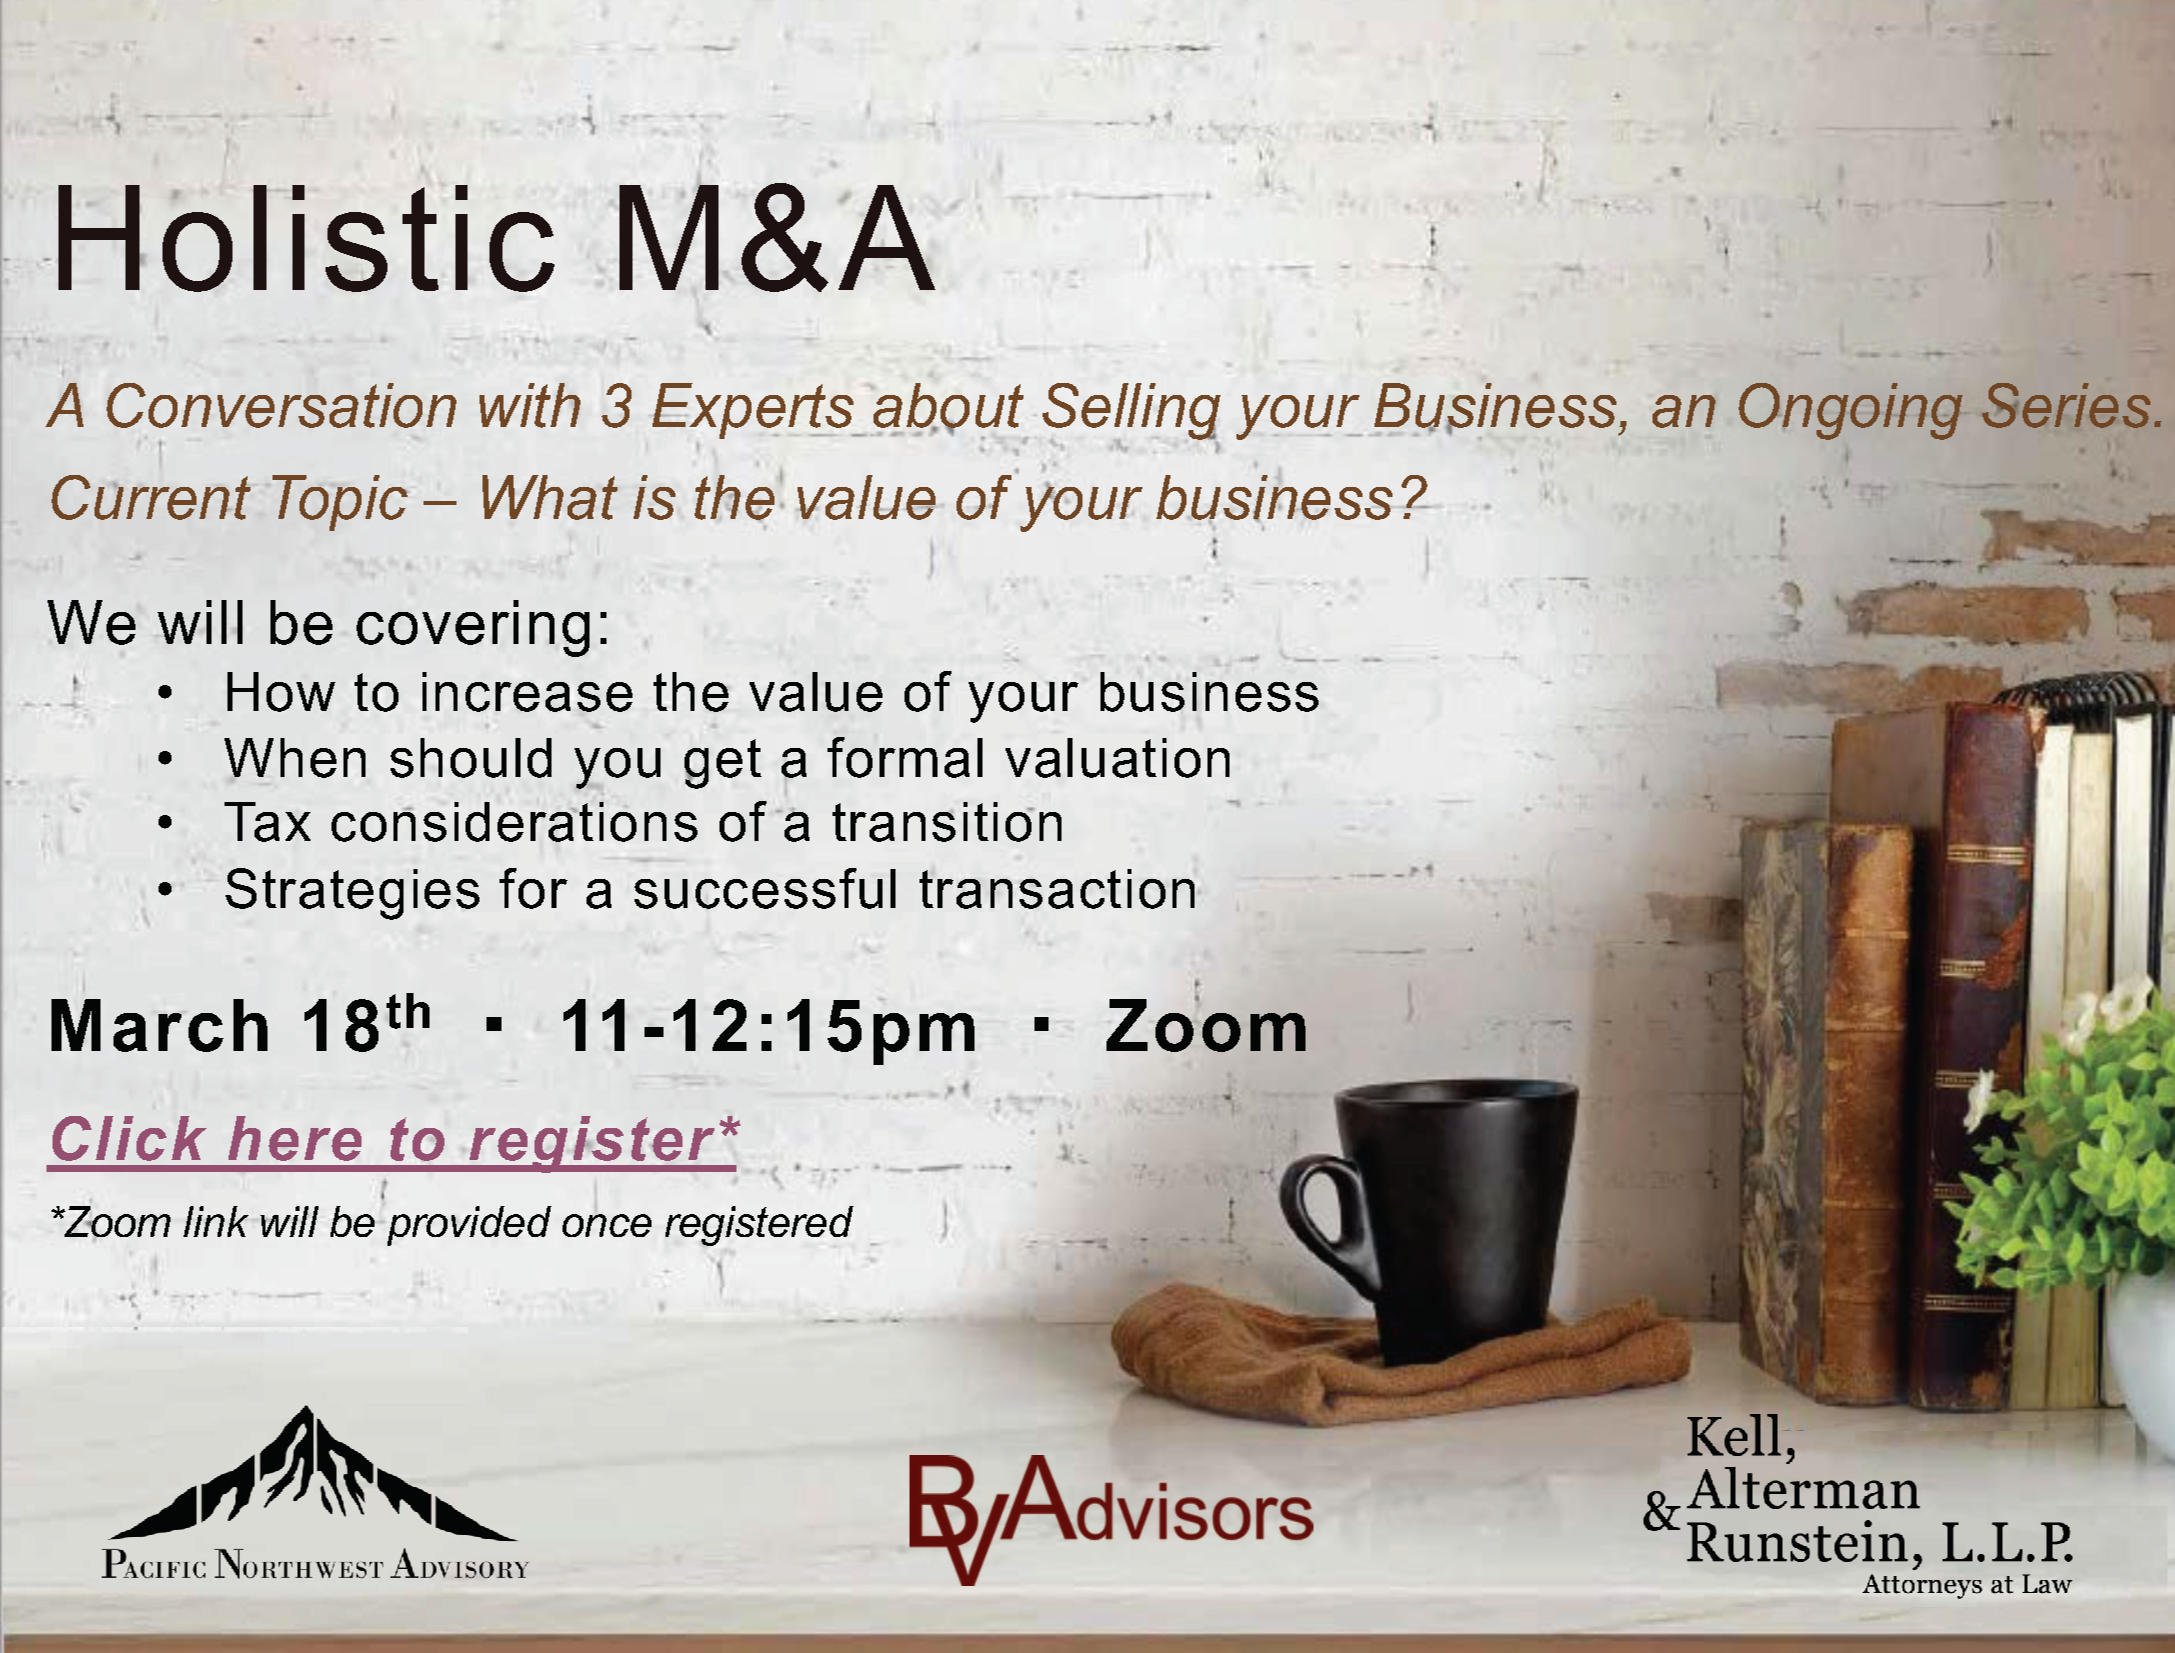 Holistic M&A Business Roundtable - How to Improve the Valuation of your Business Thumbnail